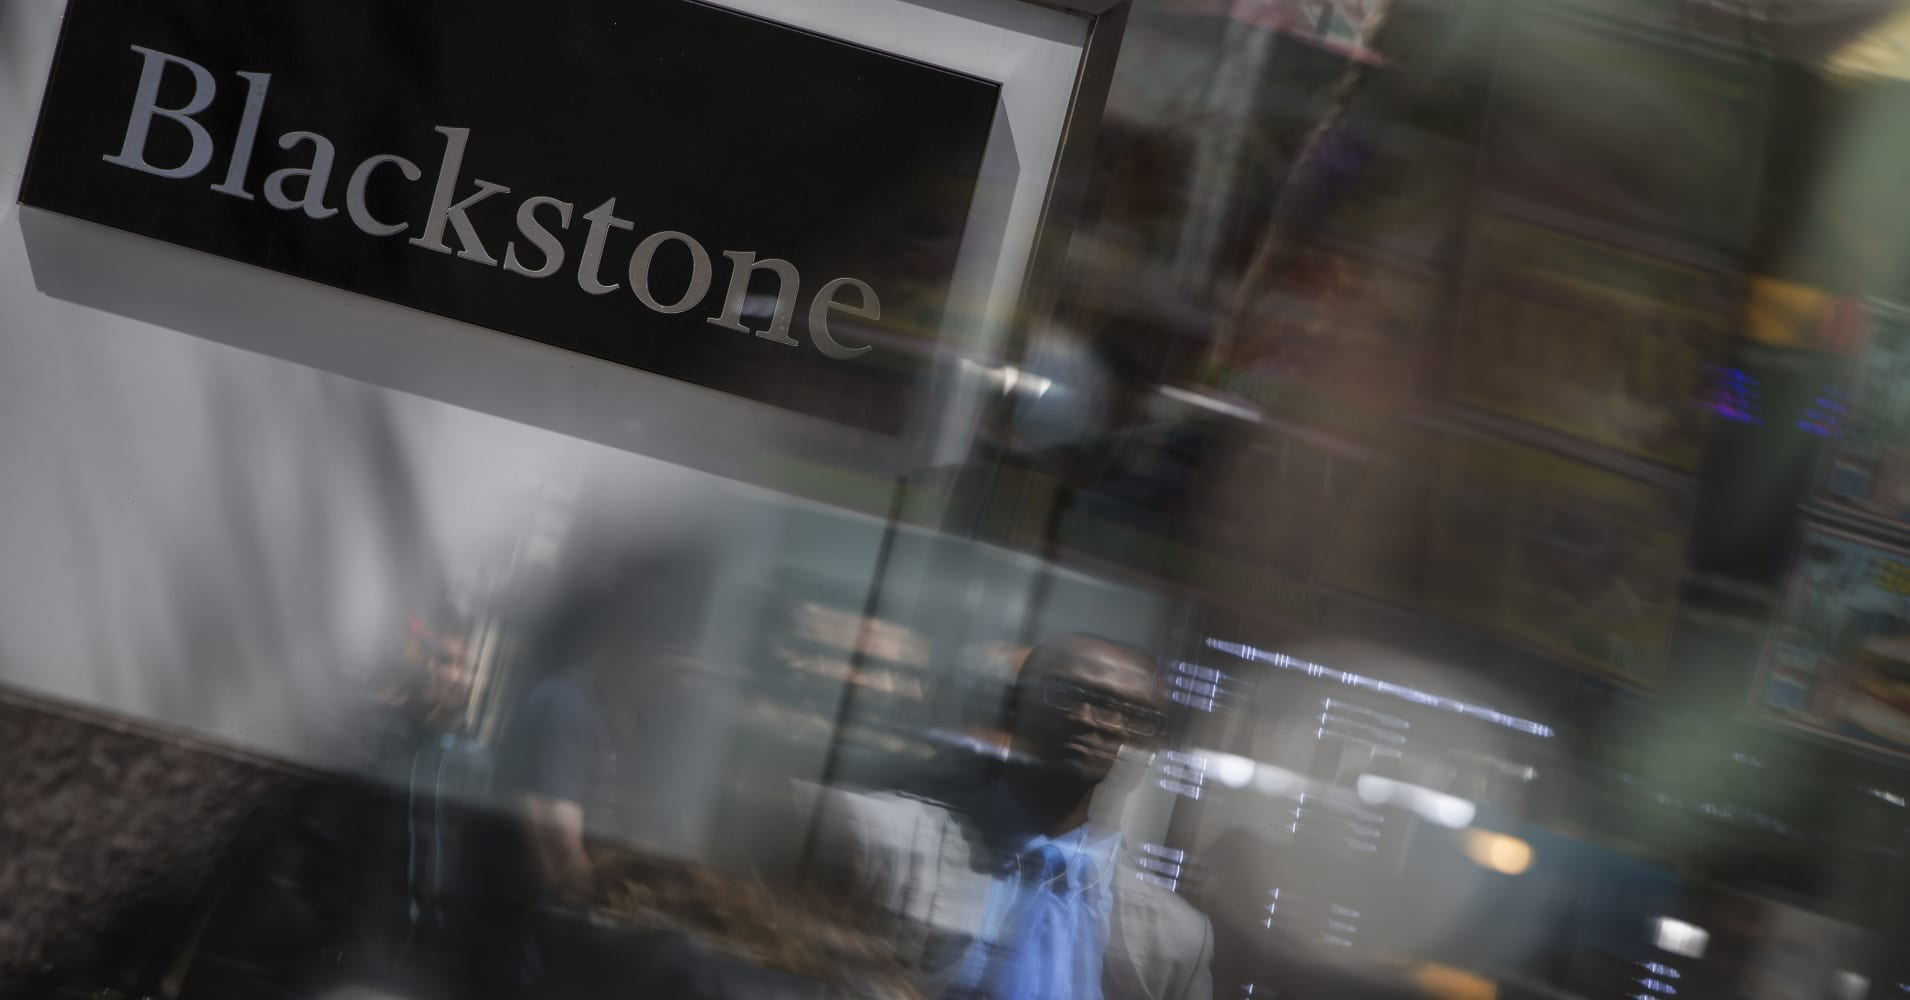 Blackstone, Saudi Arabia's PIF plan $40 billion infrastructure investment fund